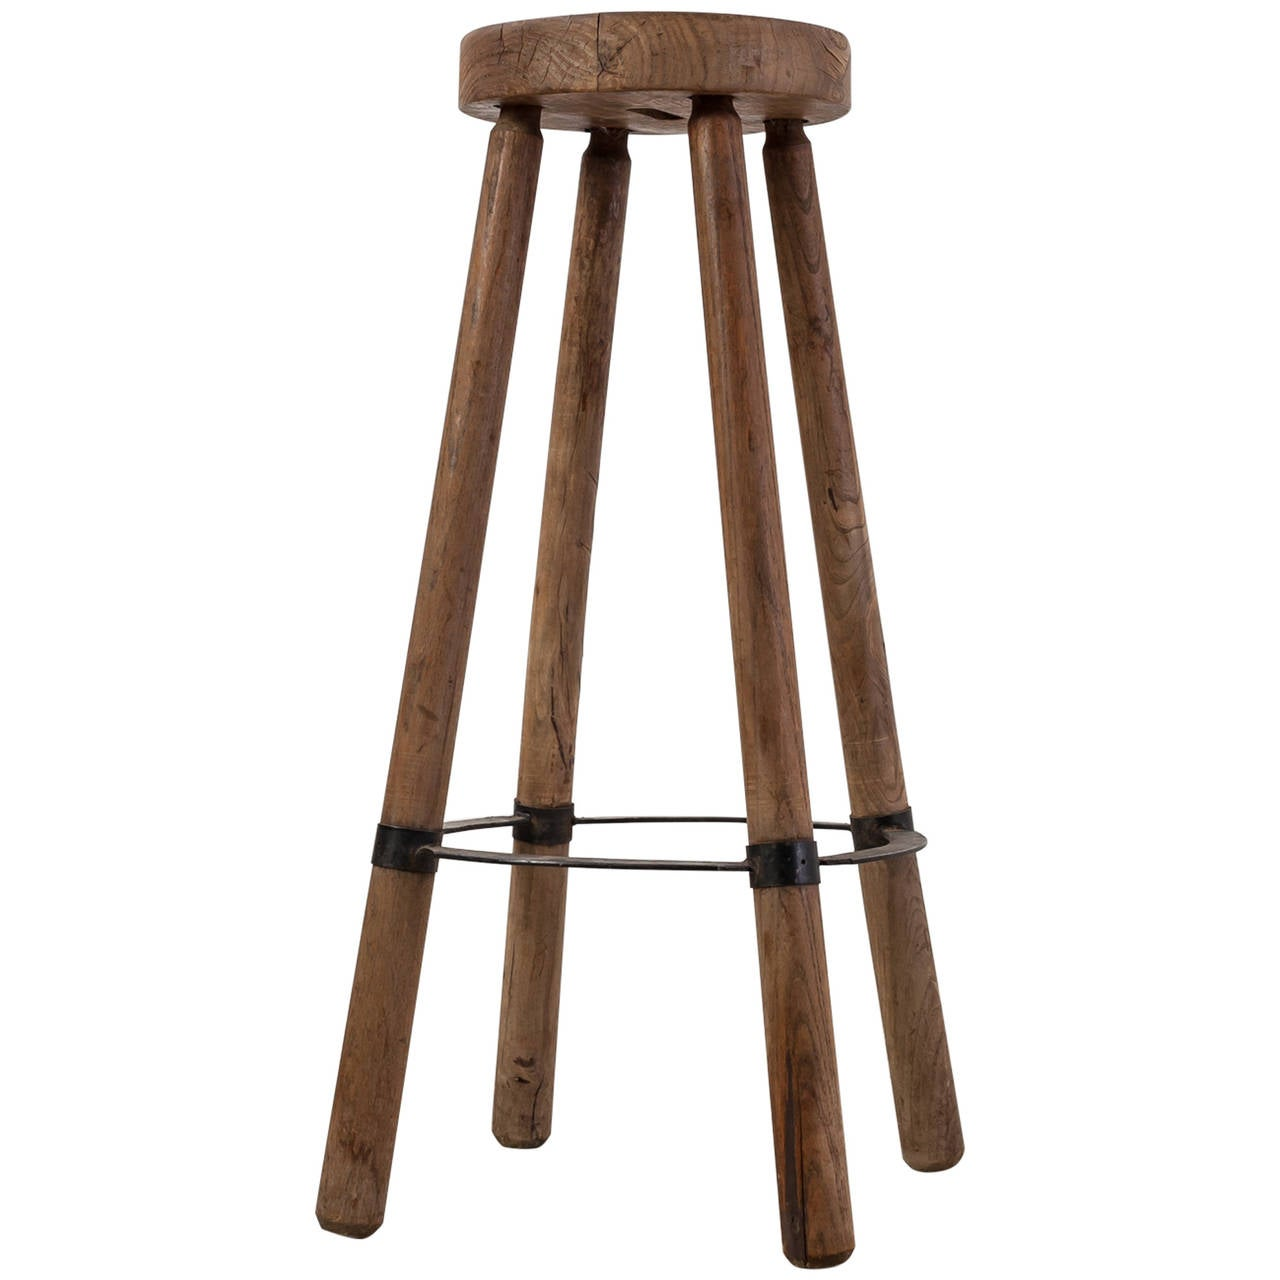 High French Stool in Wood with Metal Foot Ring